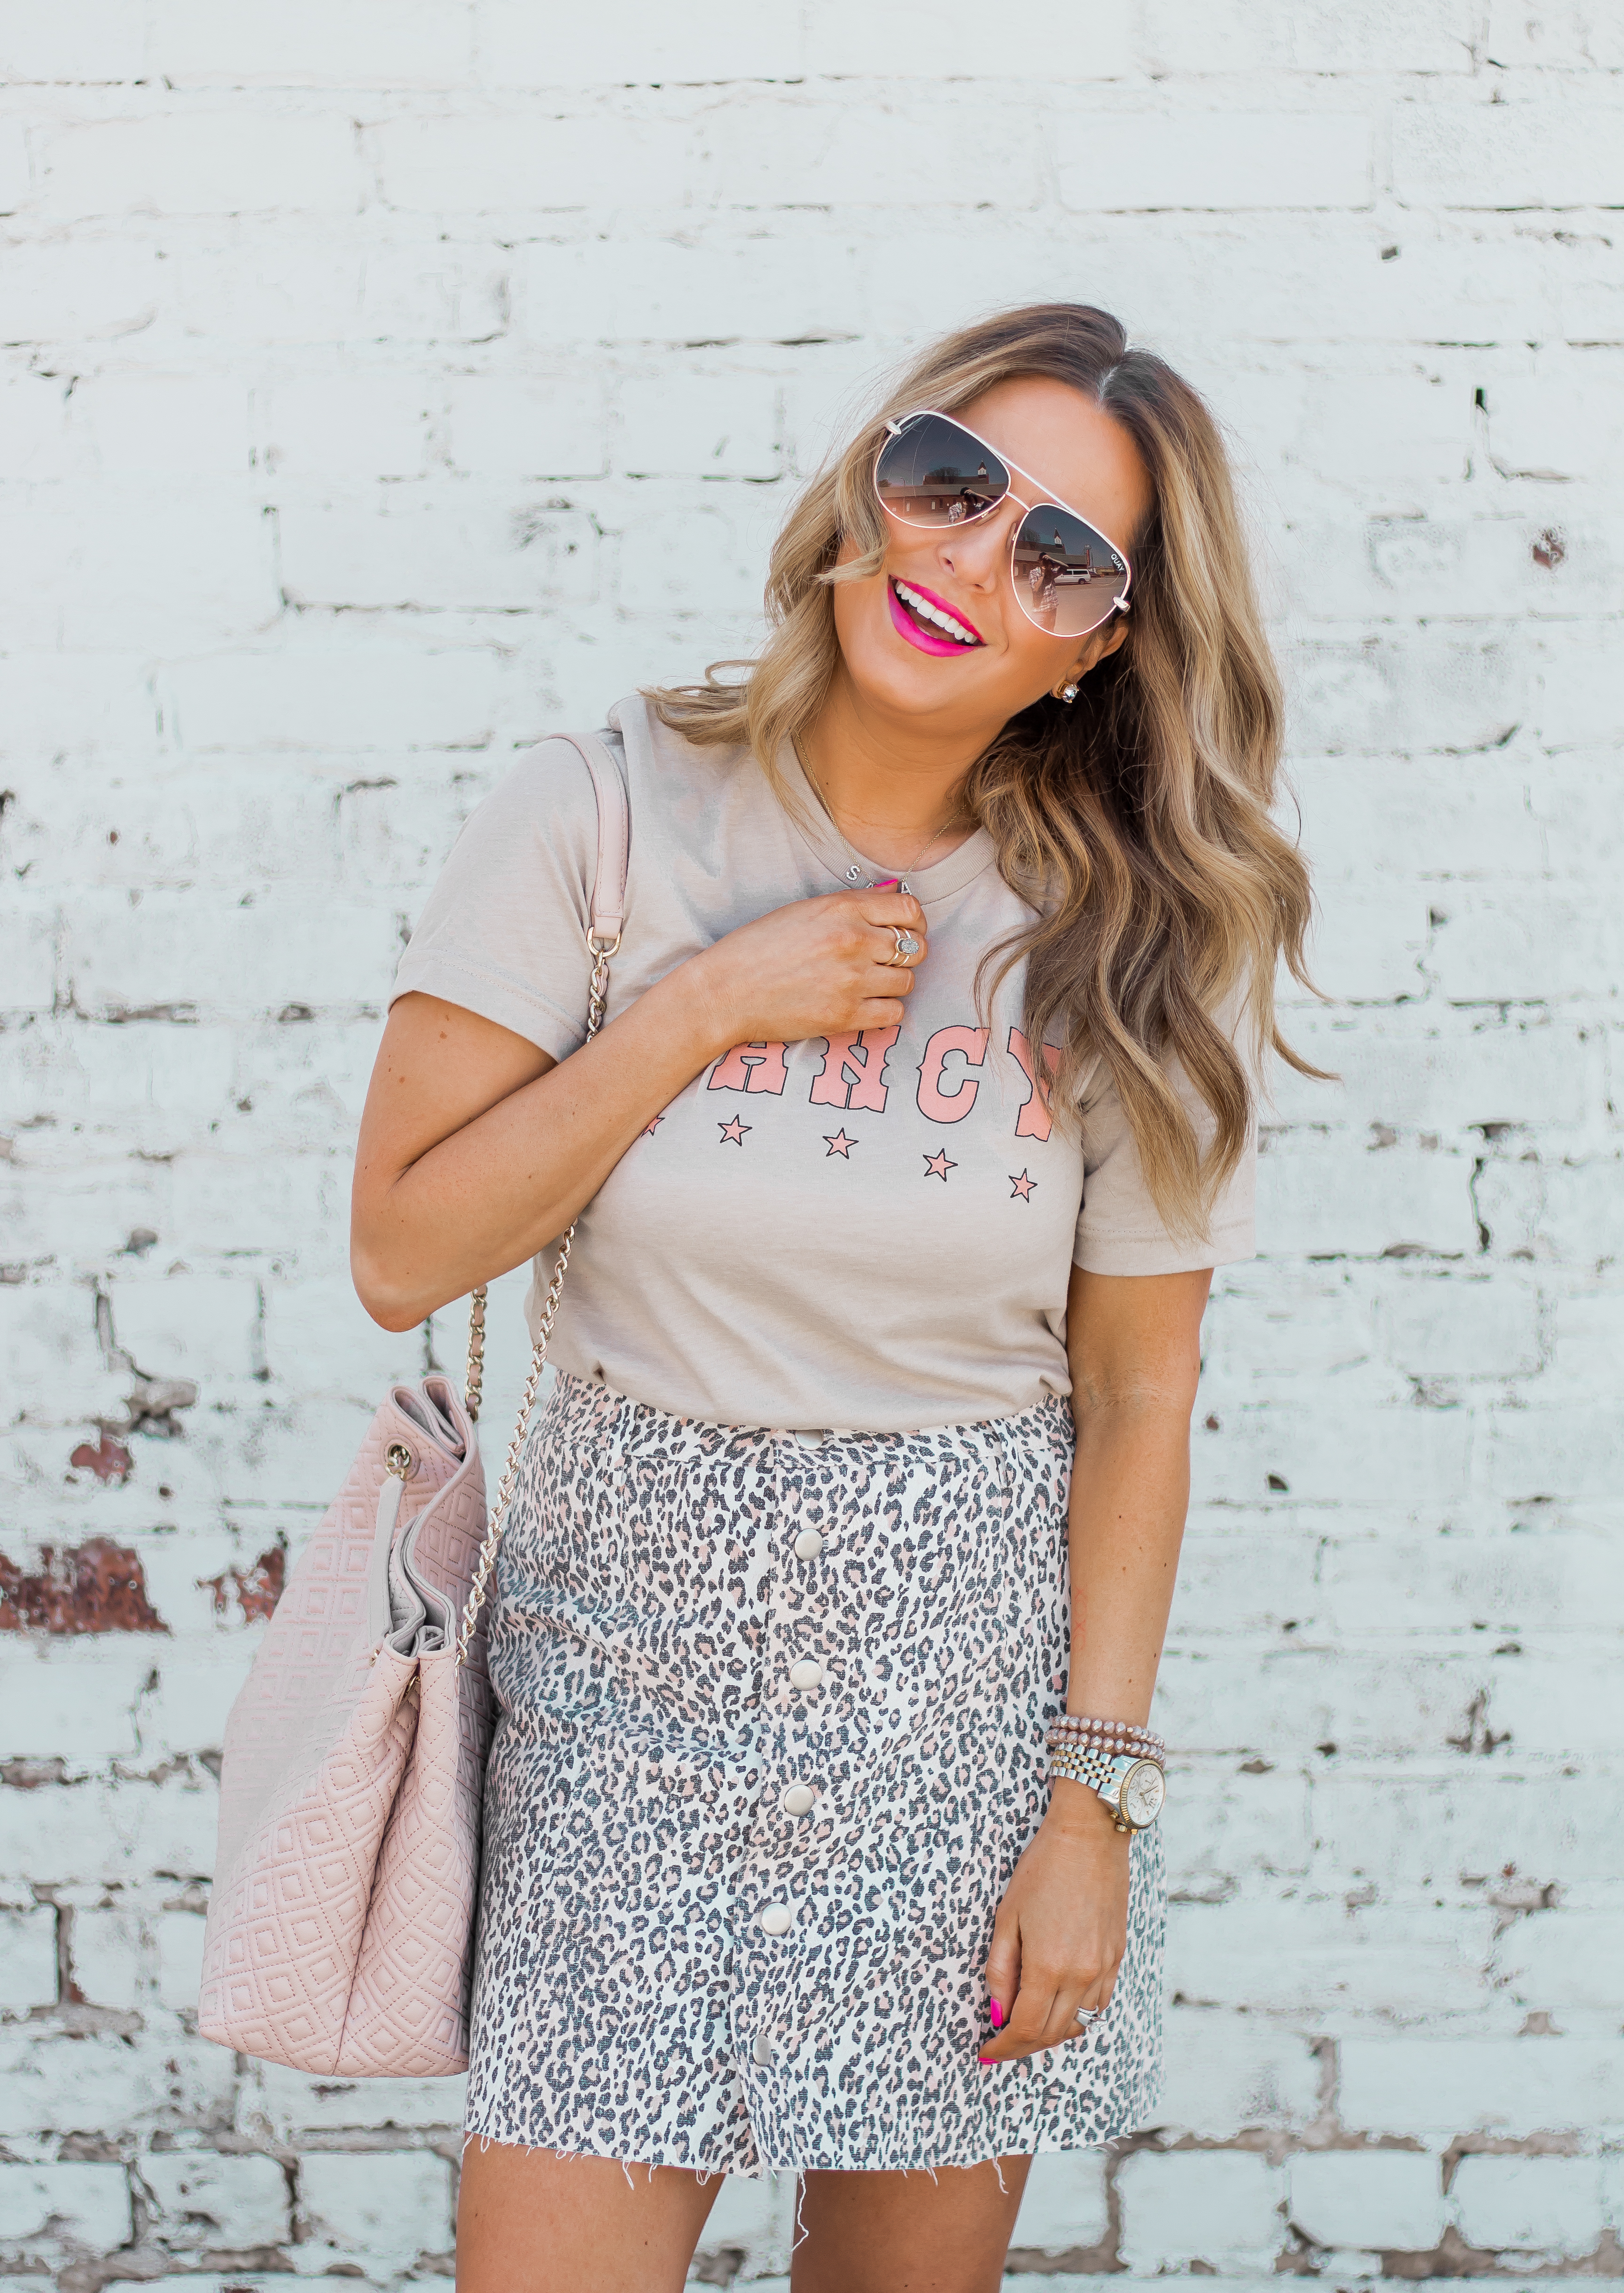 Fancy Graphic Tee-Leopard Skirt-Sugar Boutique-$250 Gift Card Giveaway-Tory Burch Fleming Bag-Quay Sunglasses-Sabby Style-Omaha Blogger-Women's Fashion-Spring Fashion-Summer Outfit-3